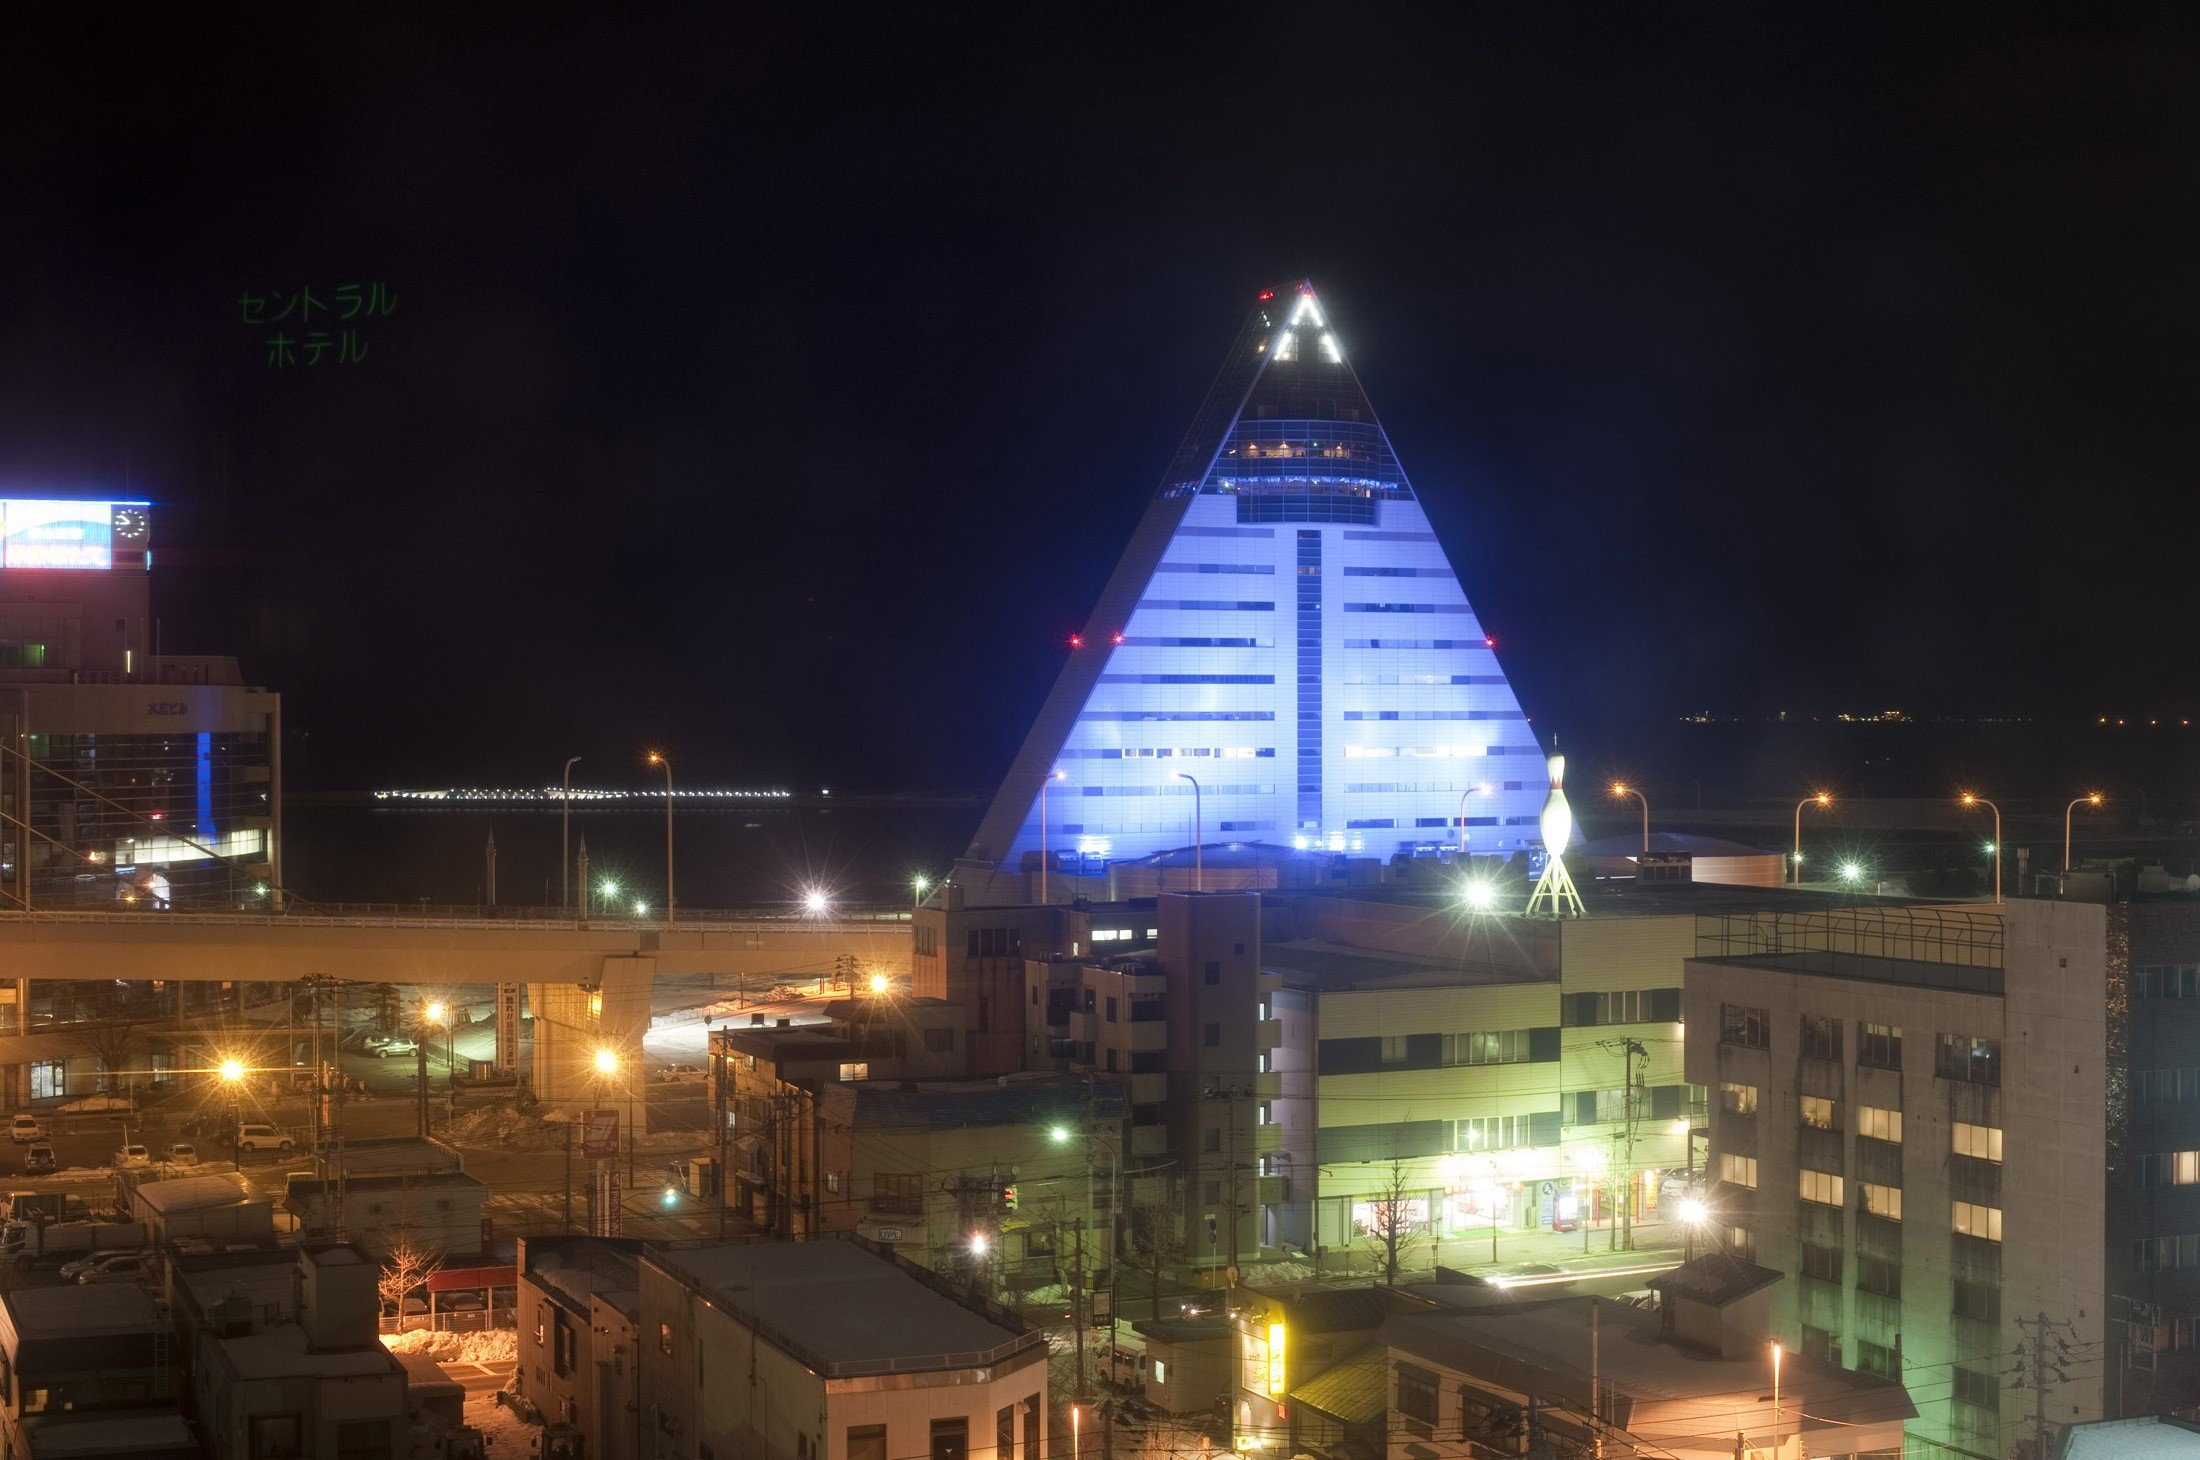 The landmark triangular pyramid like building of the Aomori Prefectural Tourist Center illuminated in blue at night